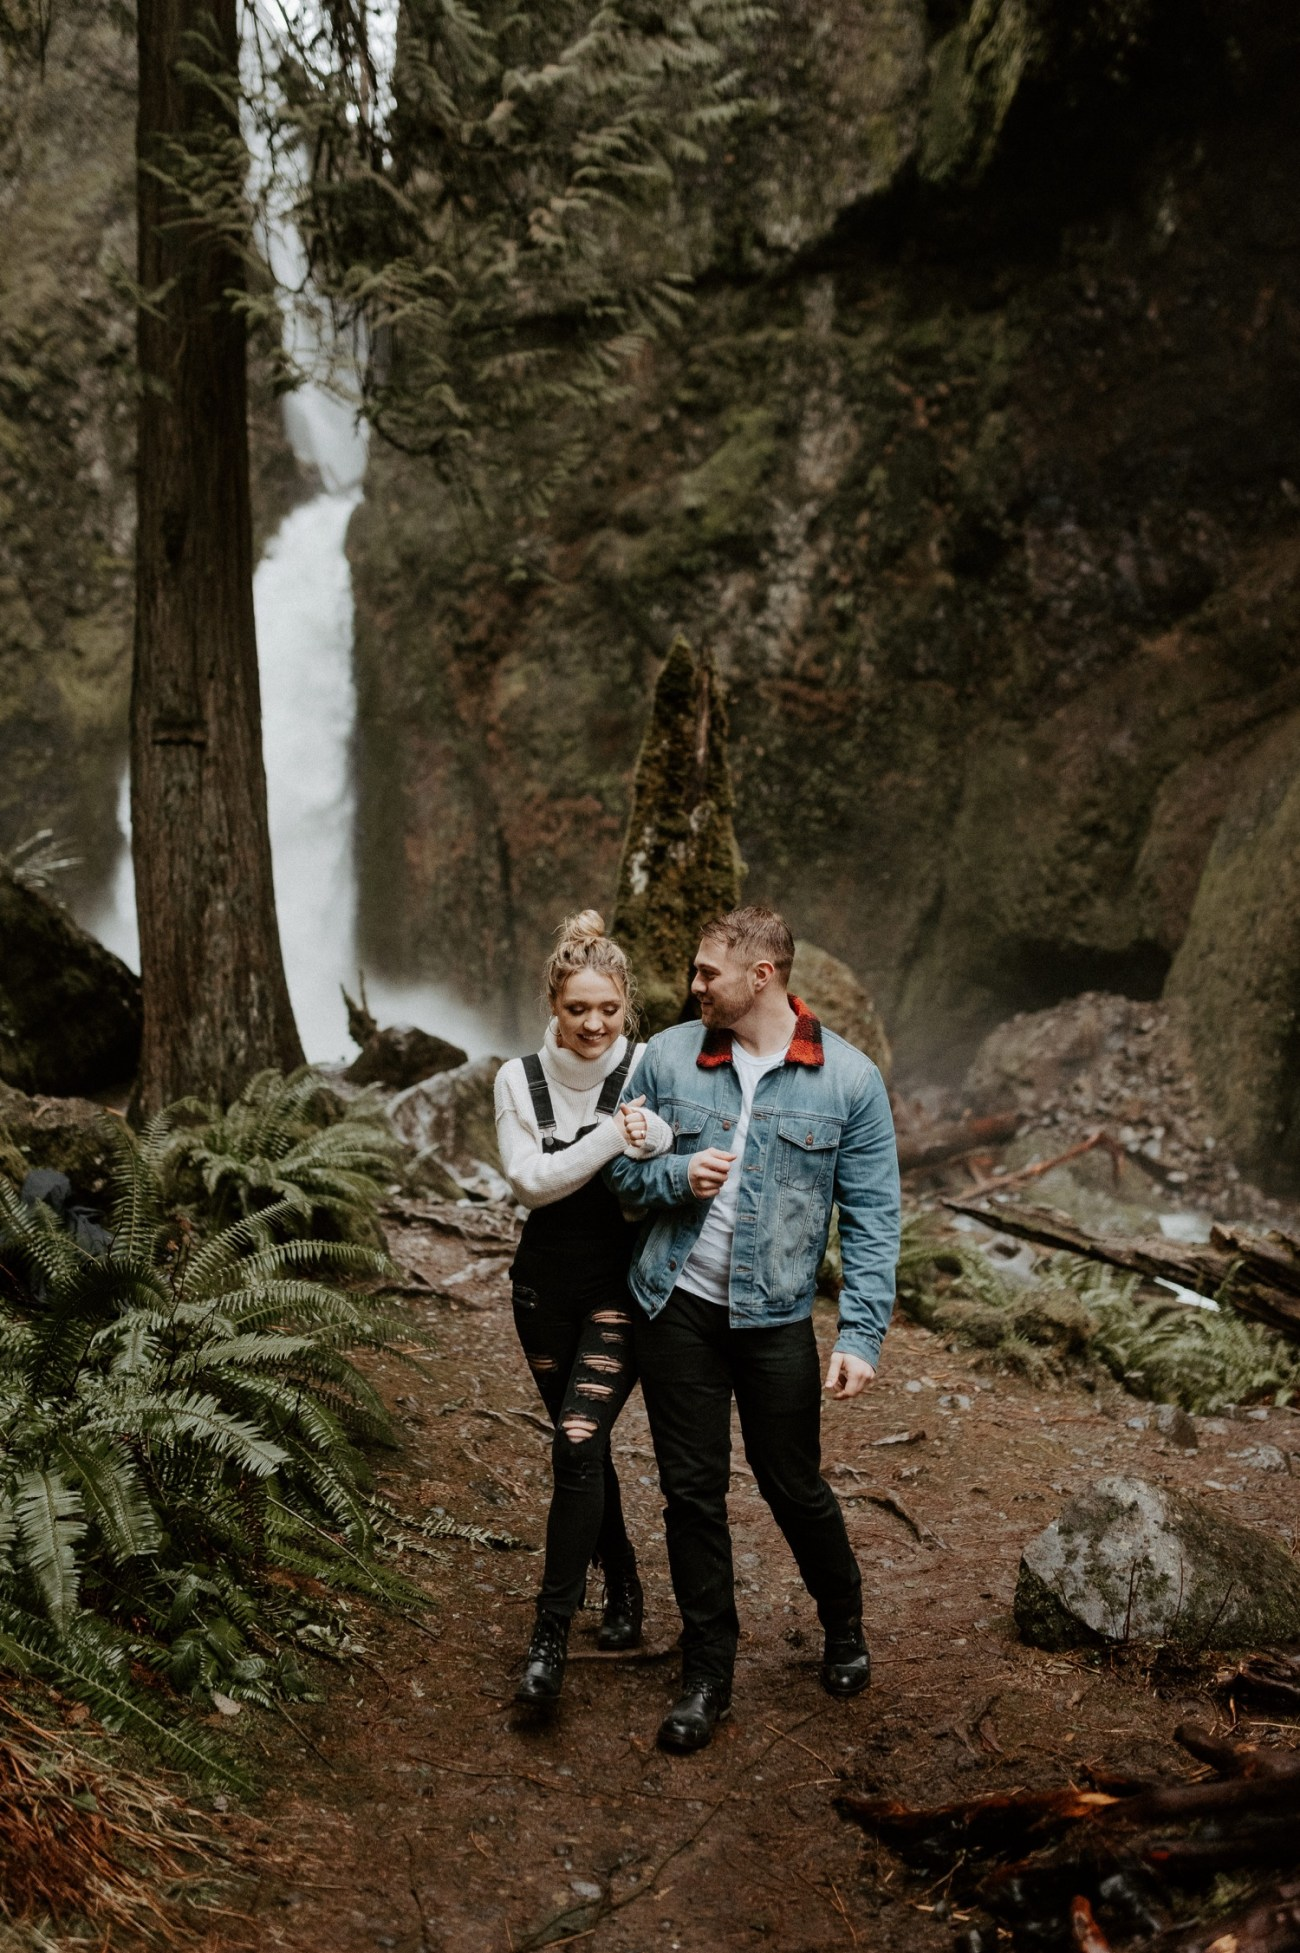 Wahclella Falls Engagement Session Columbia River Gorge Oregon Portland Wedding Photographer PNW Elopement Photographer Bend Wedding Photographer Anais Possamai Photography 047